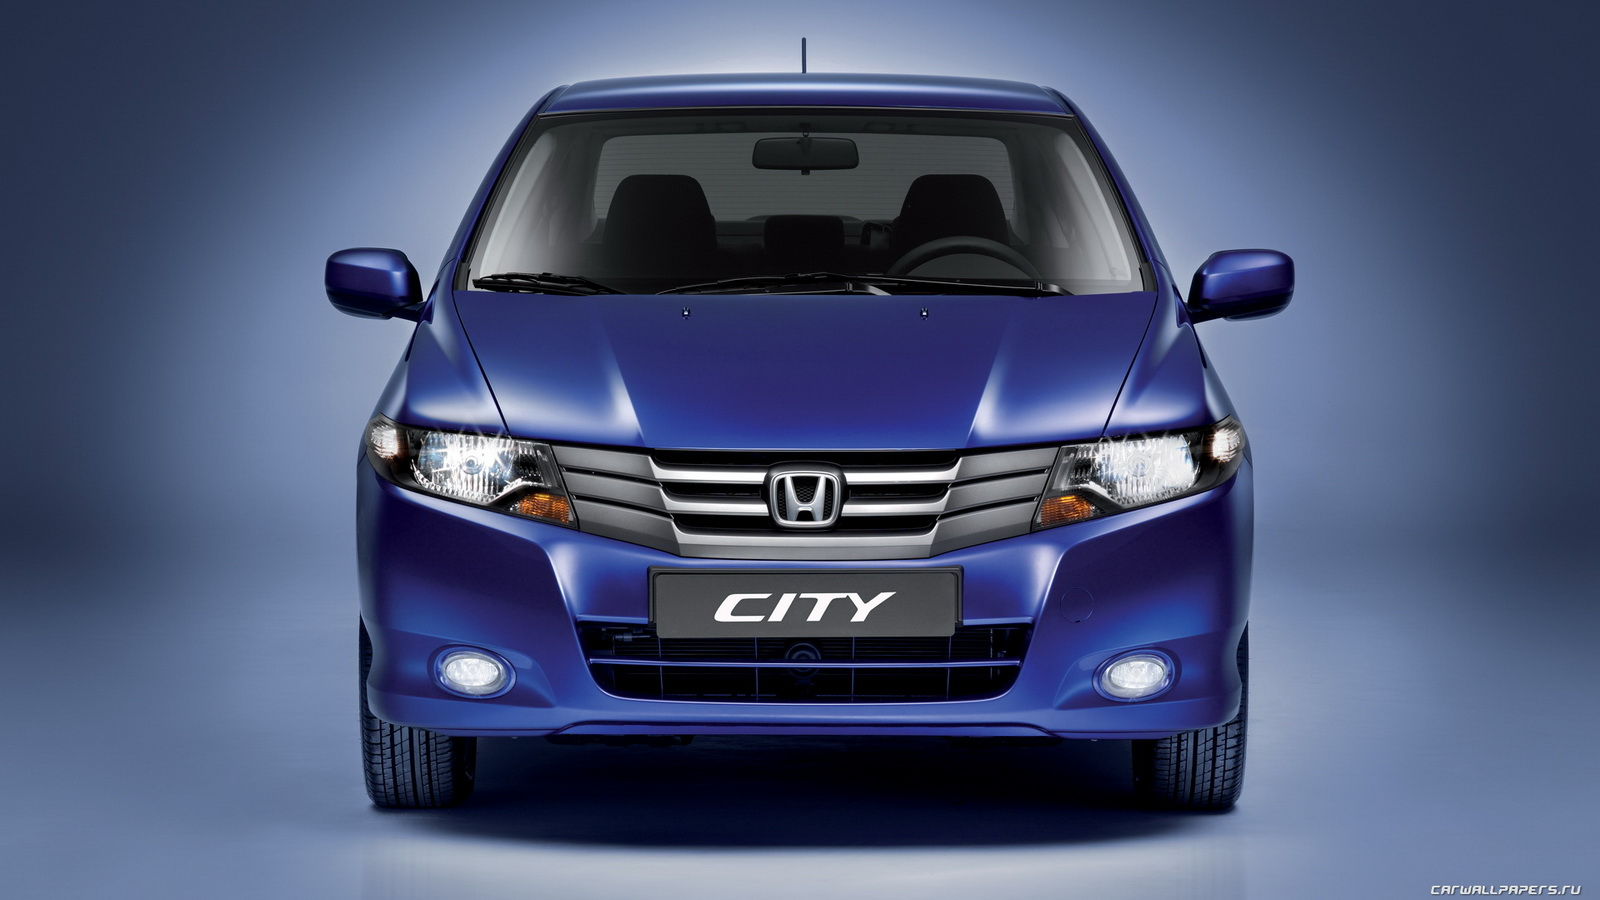 Honda City Third Gen Blue Front